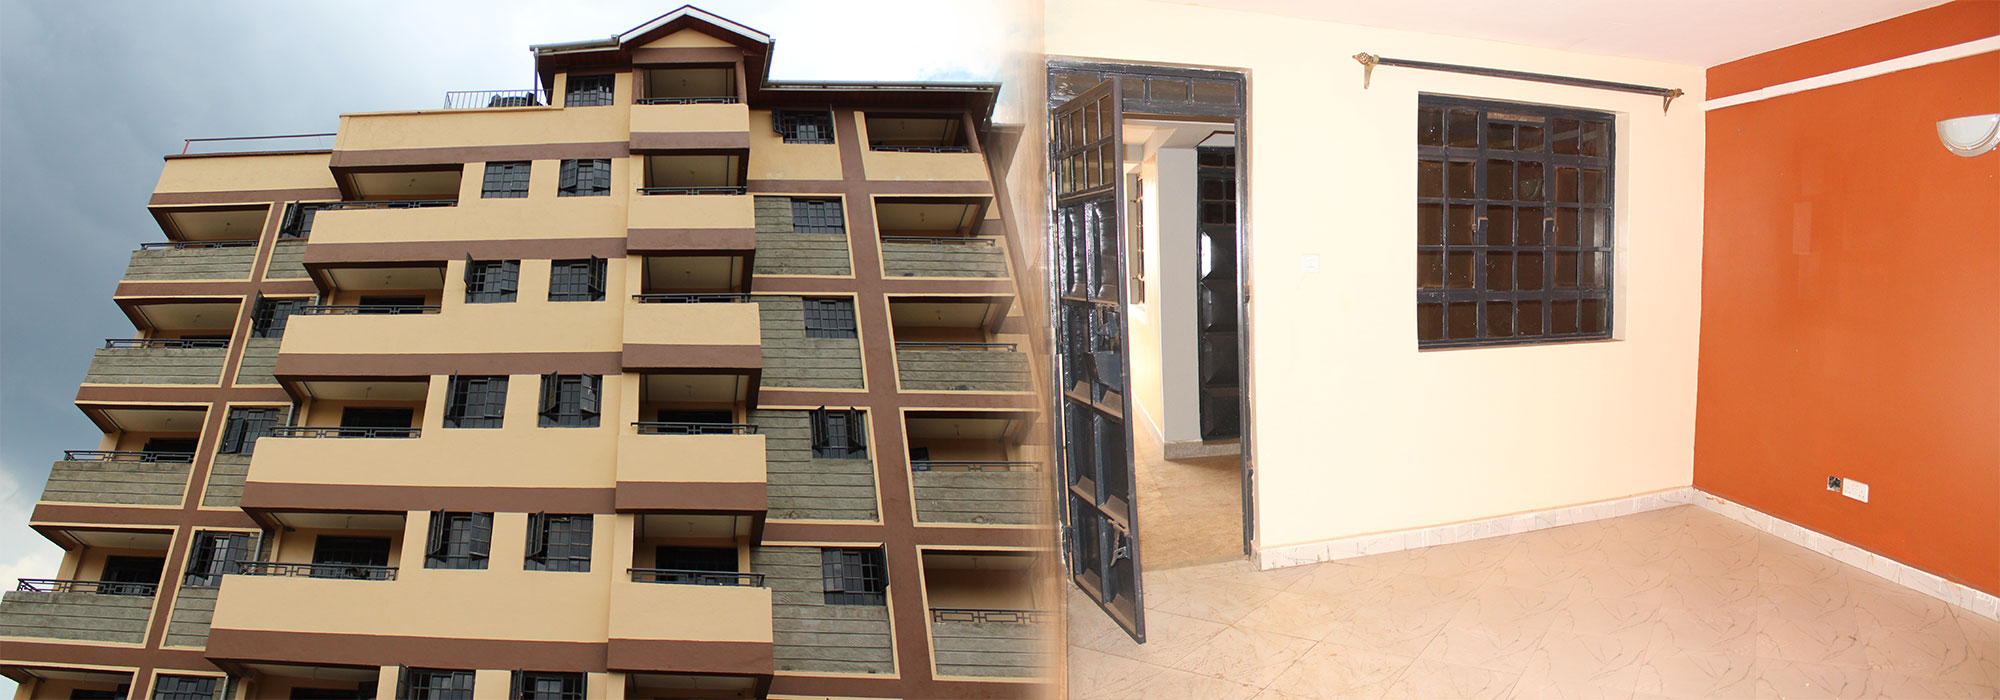 1 & 2 bedroom apartment to rent large windows JM Apartments